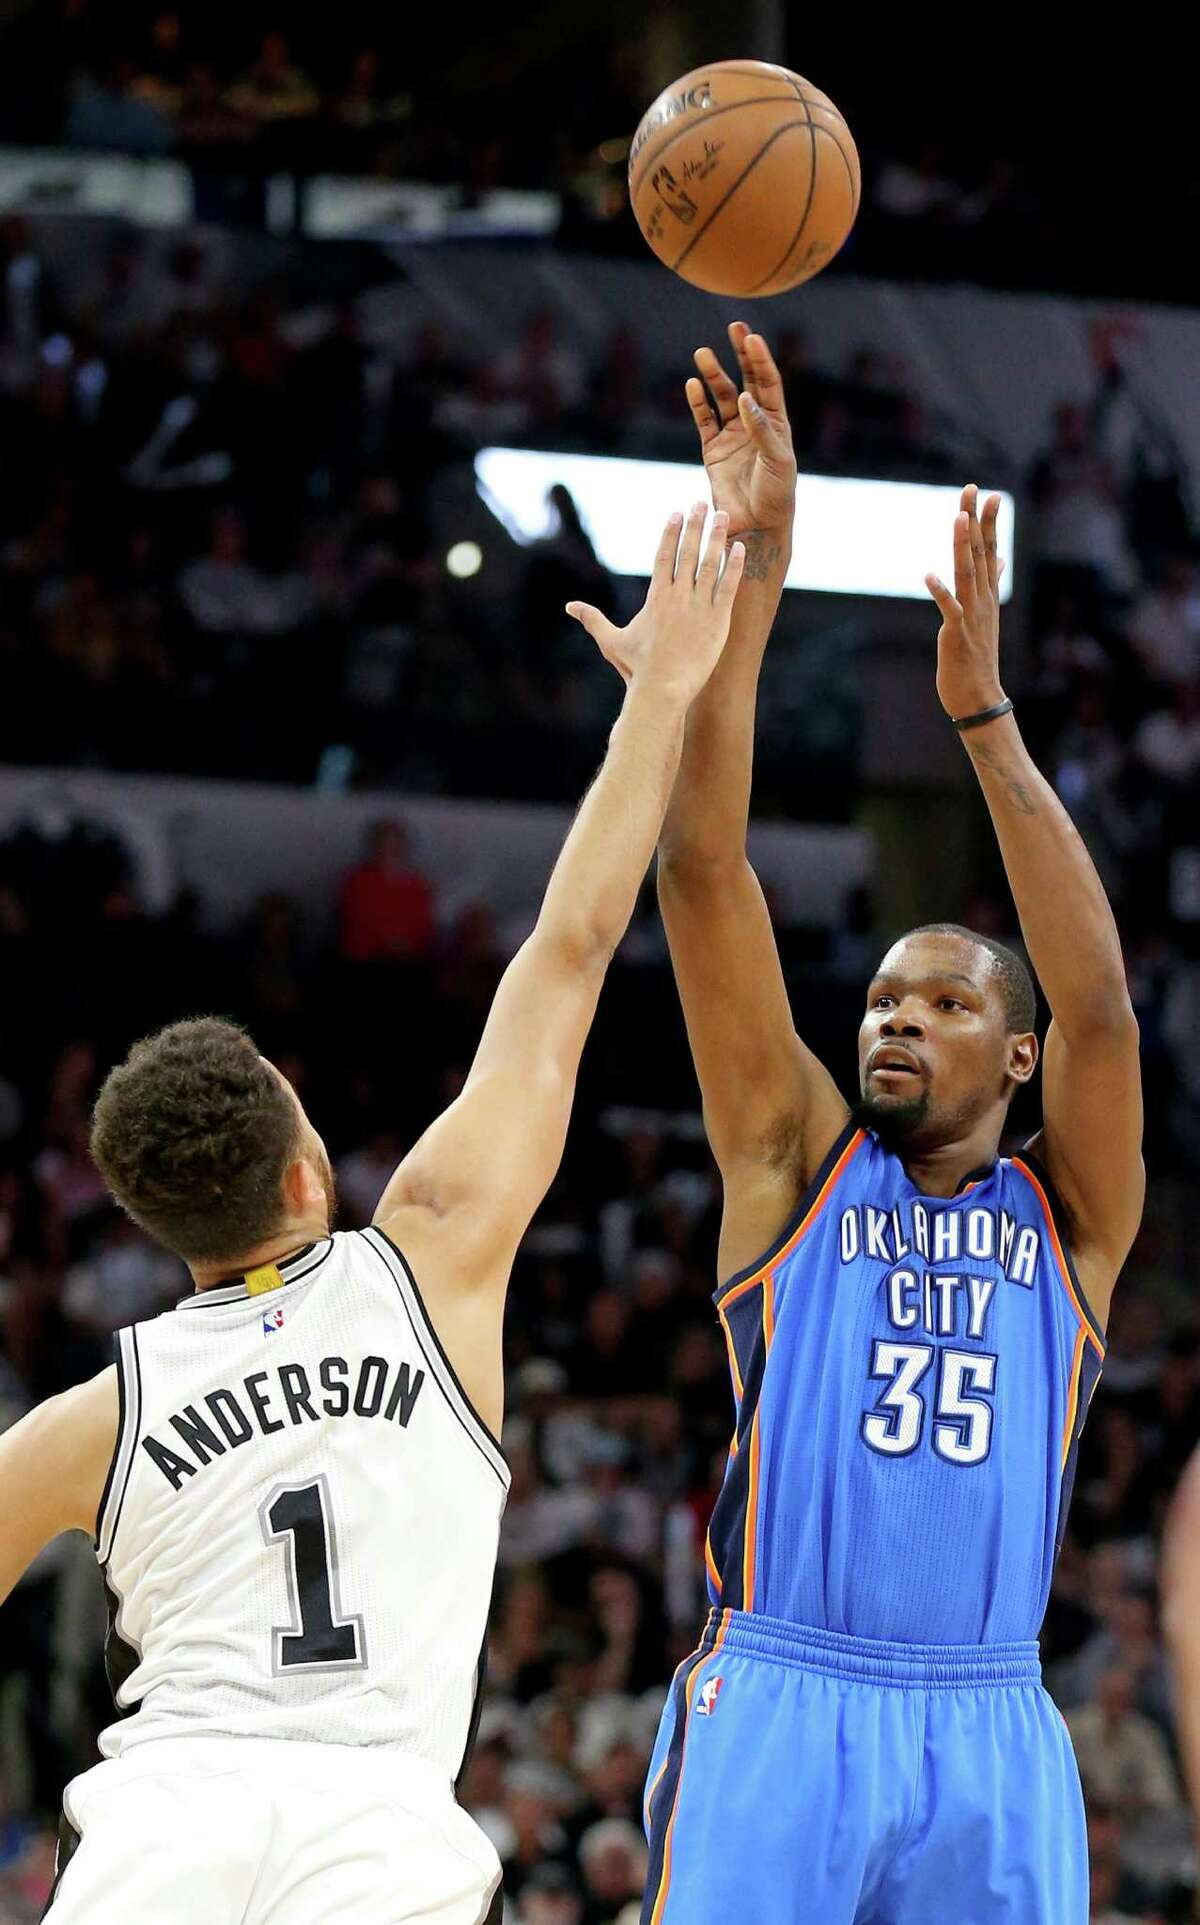 Oklahoma City Thunder's Kevin Durant shoots over San Antonio Spurs' Kyle Anderson during first half action of Game 5 in the Western Conference semifinals Tuesday May 10, 2016 at the AT&T Center.